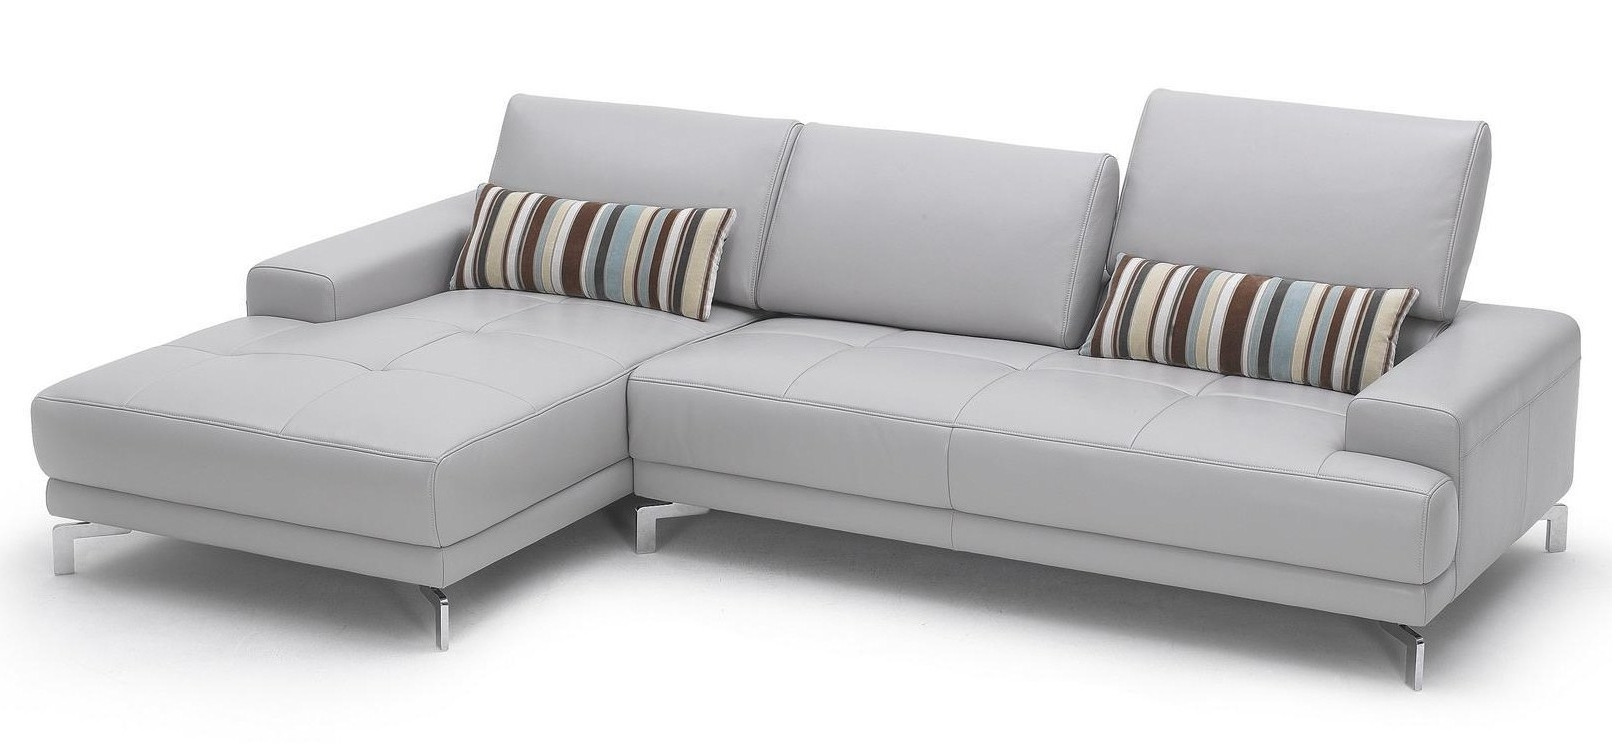 White Modern Sofas For Most Recent Sofas Modern And Modern Sofa White New York (View 11 of 15)